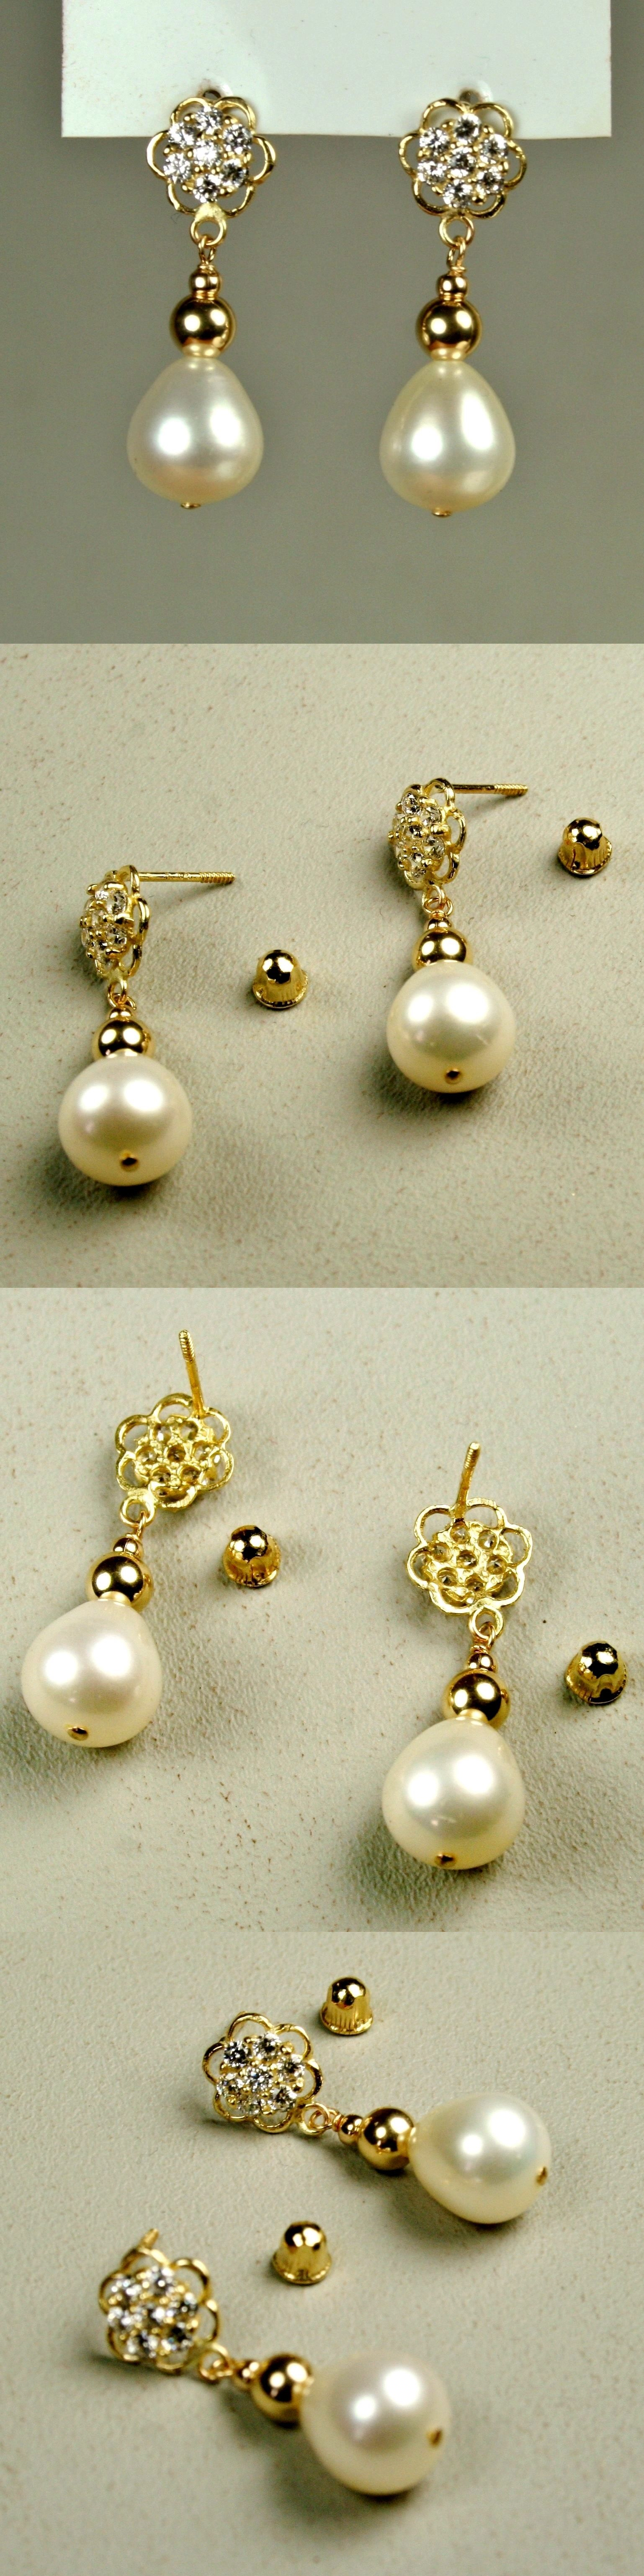 Gold High Quality10x9mm Natural Freshwater Pearl  Earrings Screw Back